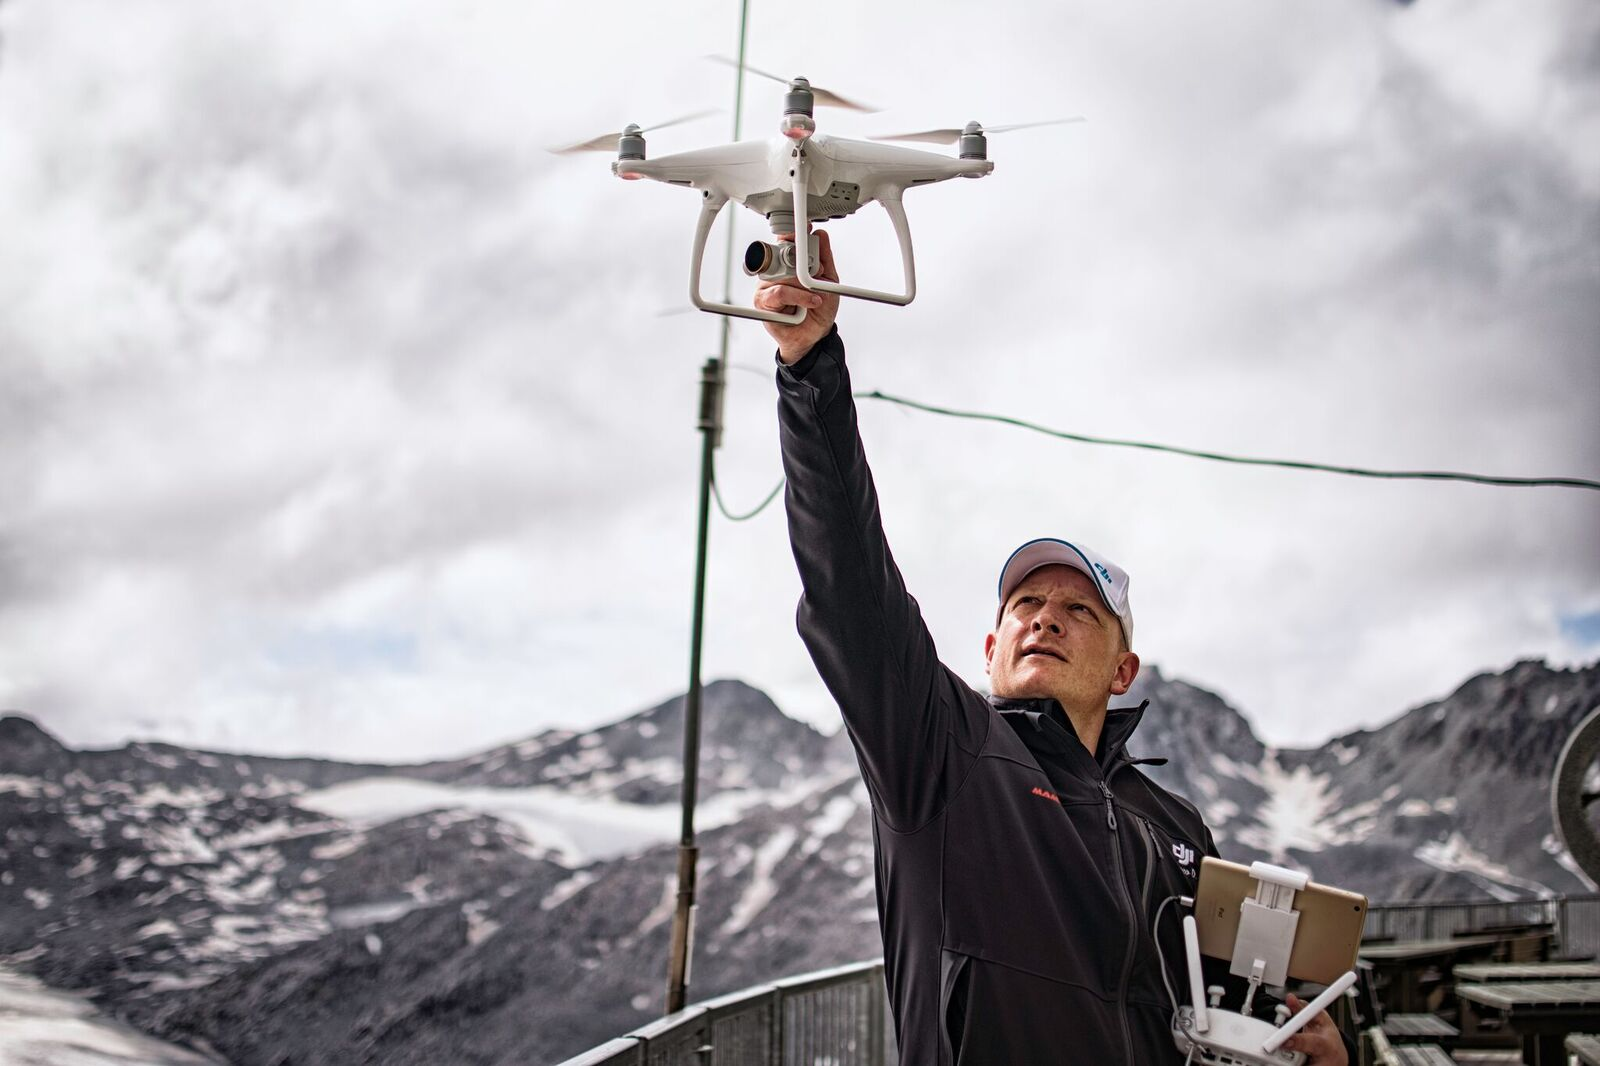 unspecified-1 DJI Sets out to Prove Drone Benefits for SAR in Rough Terrain